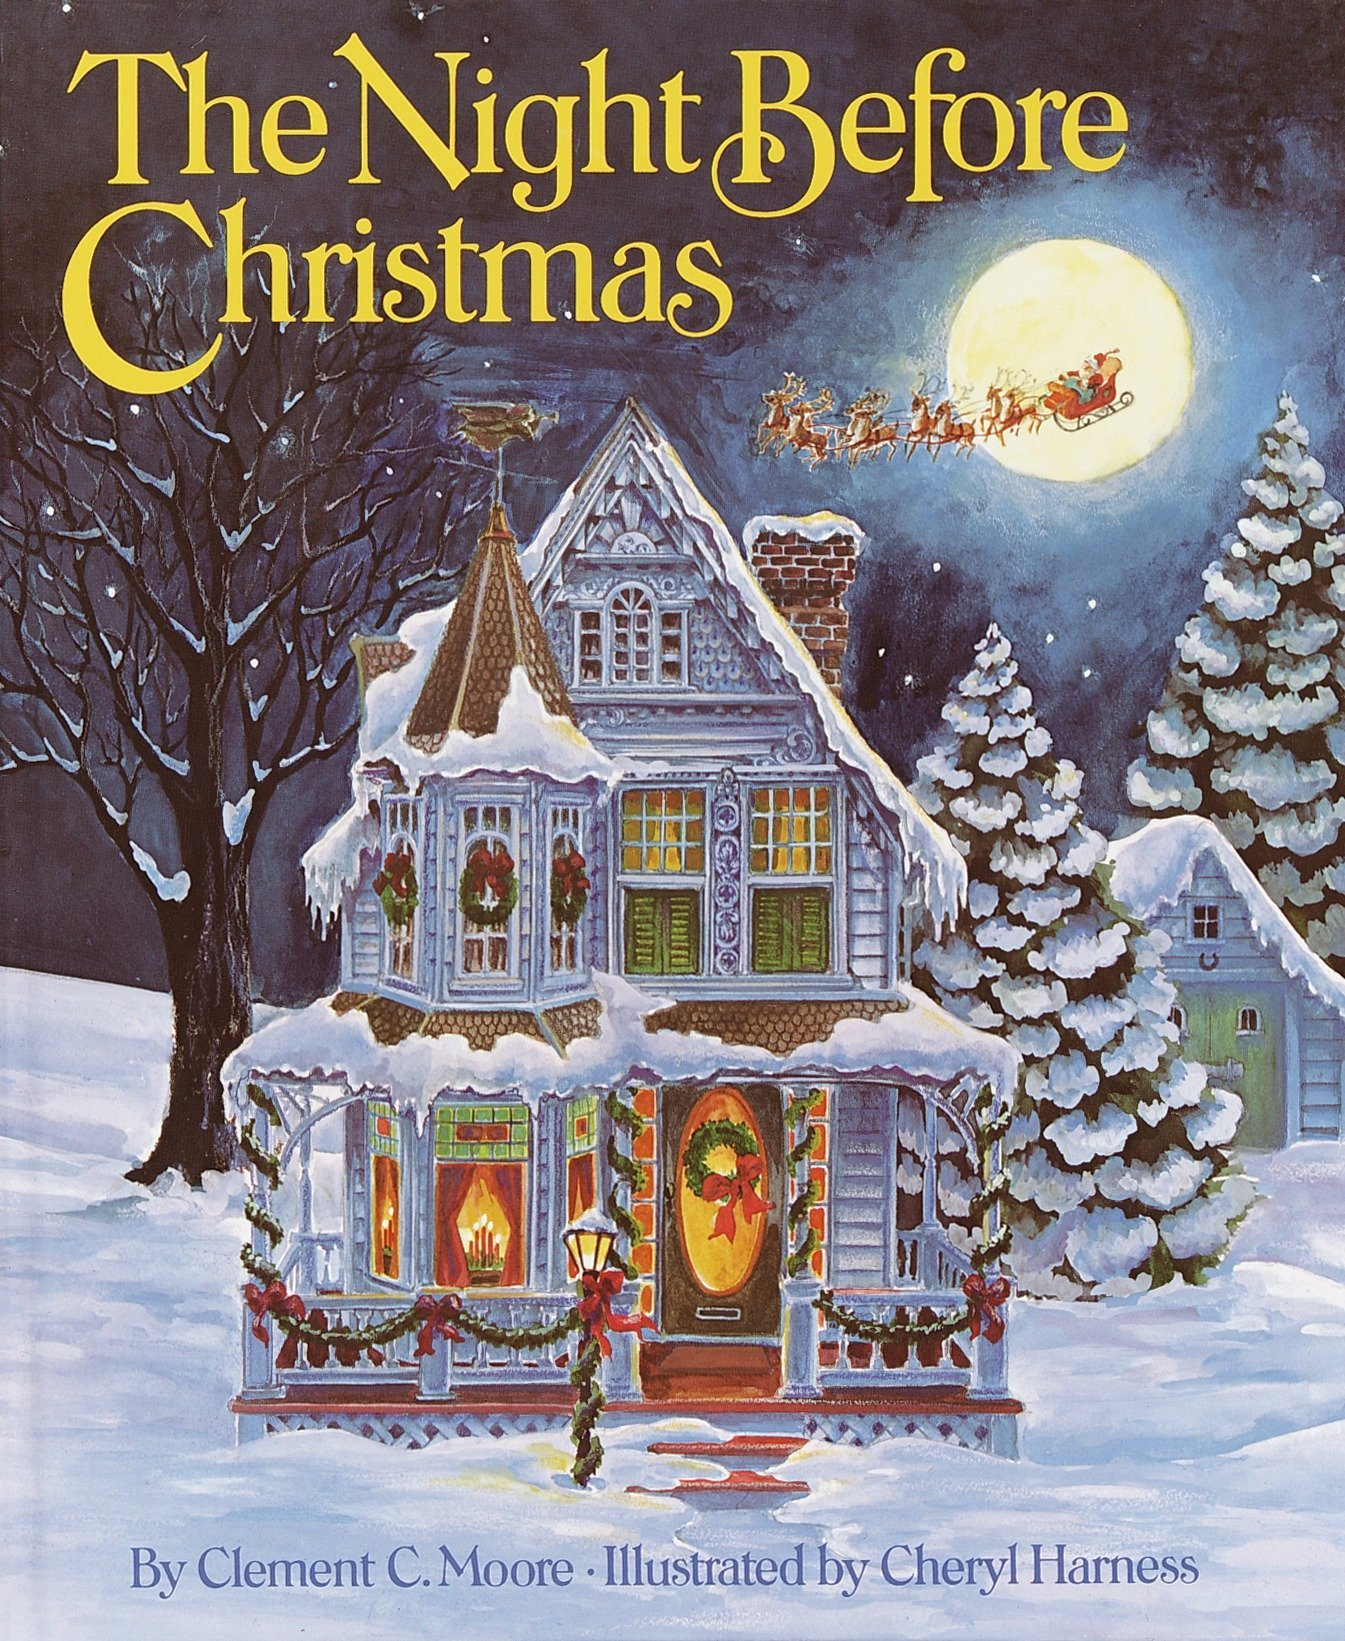 amazoncom the night before christmas 9780394826981 clement c moore cheryl harness books